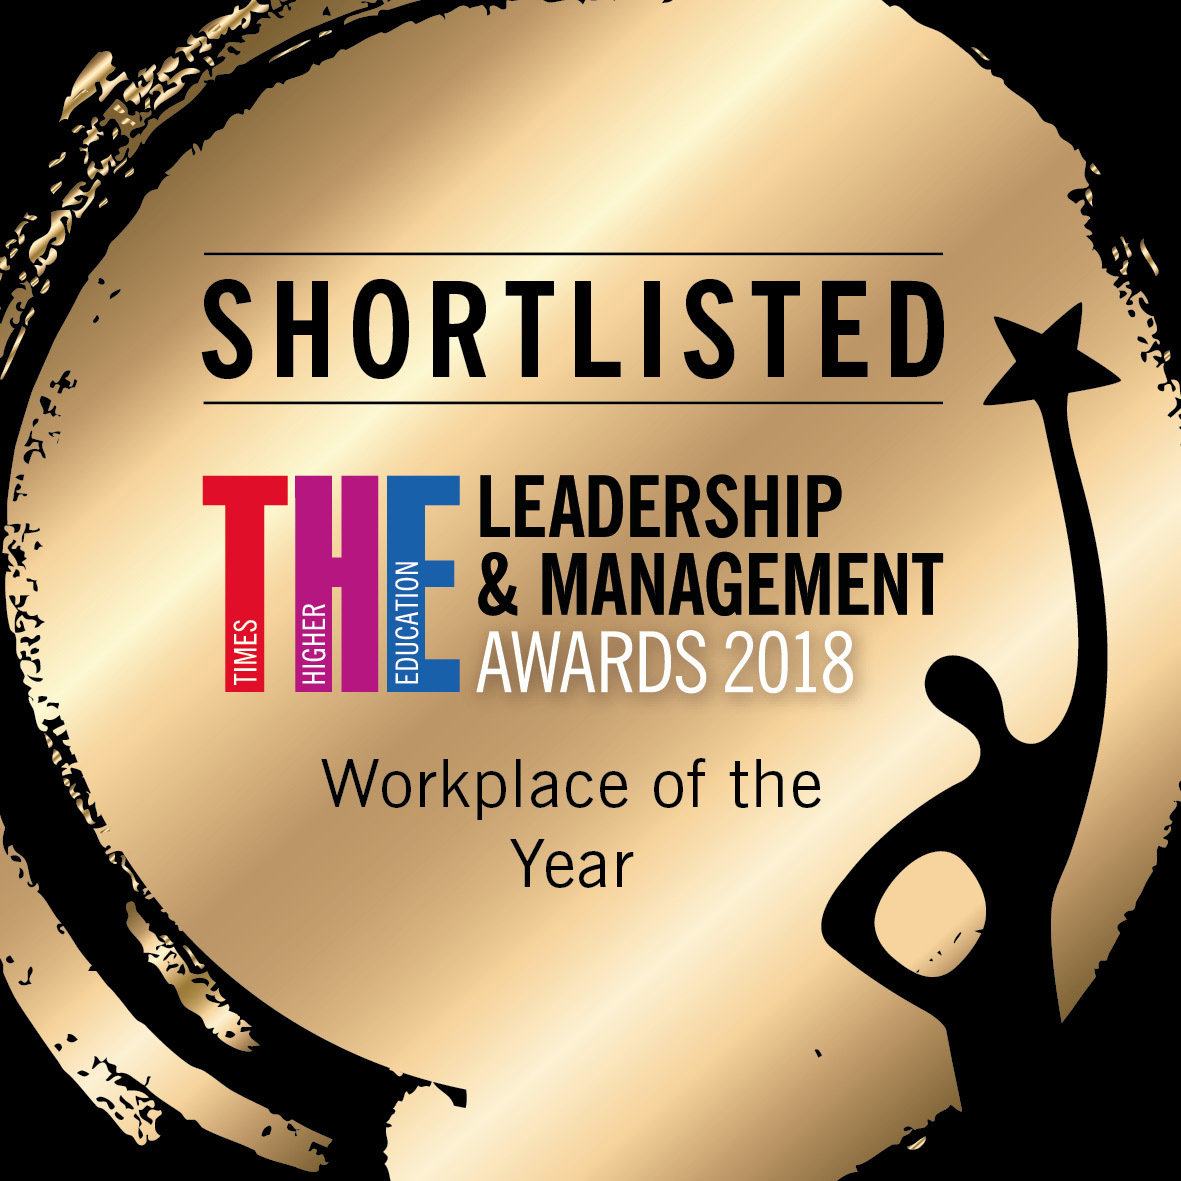 Thelmas2018_SHORTLISTED_Workplace_of_the_Year